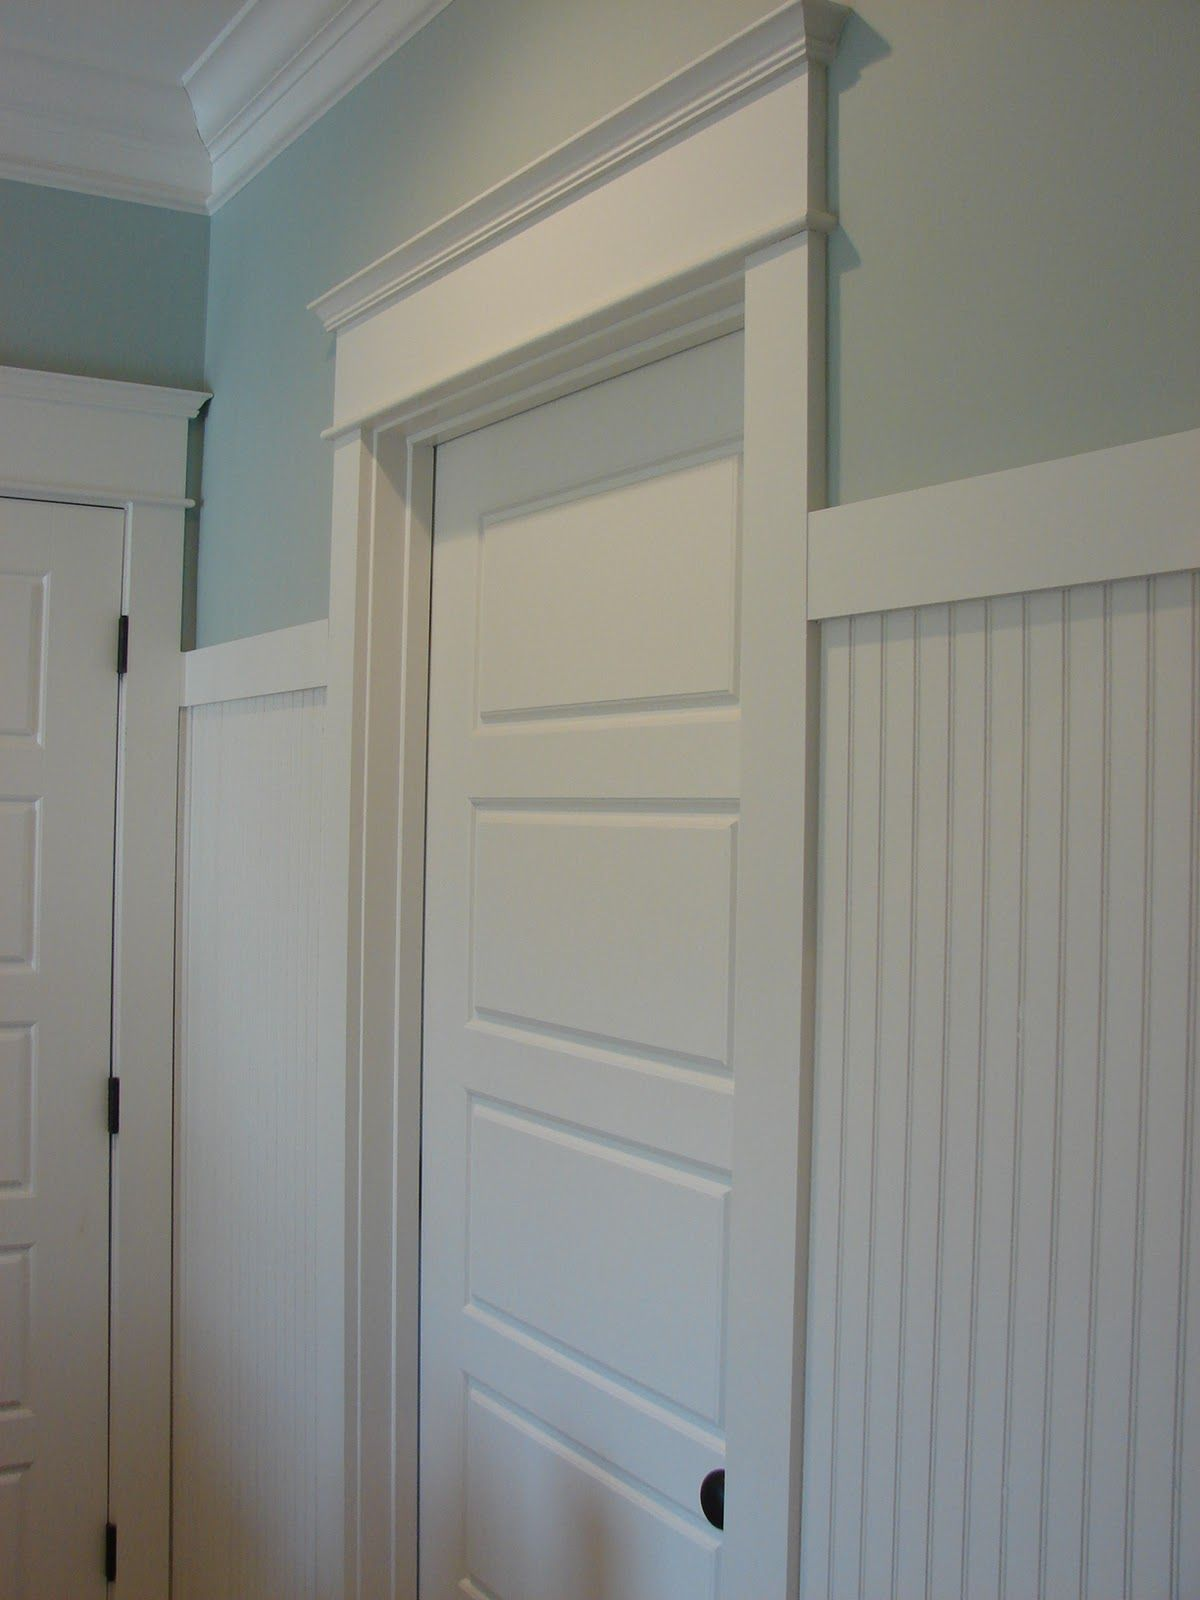 In My New Laundry Room Beadboard Wainscoting Wainscoting Kitchen Wainscoting Styles